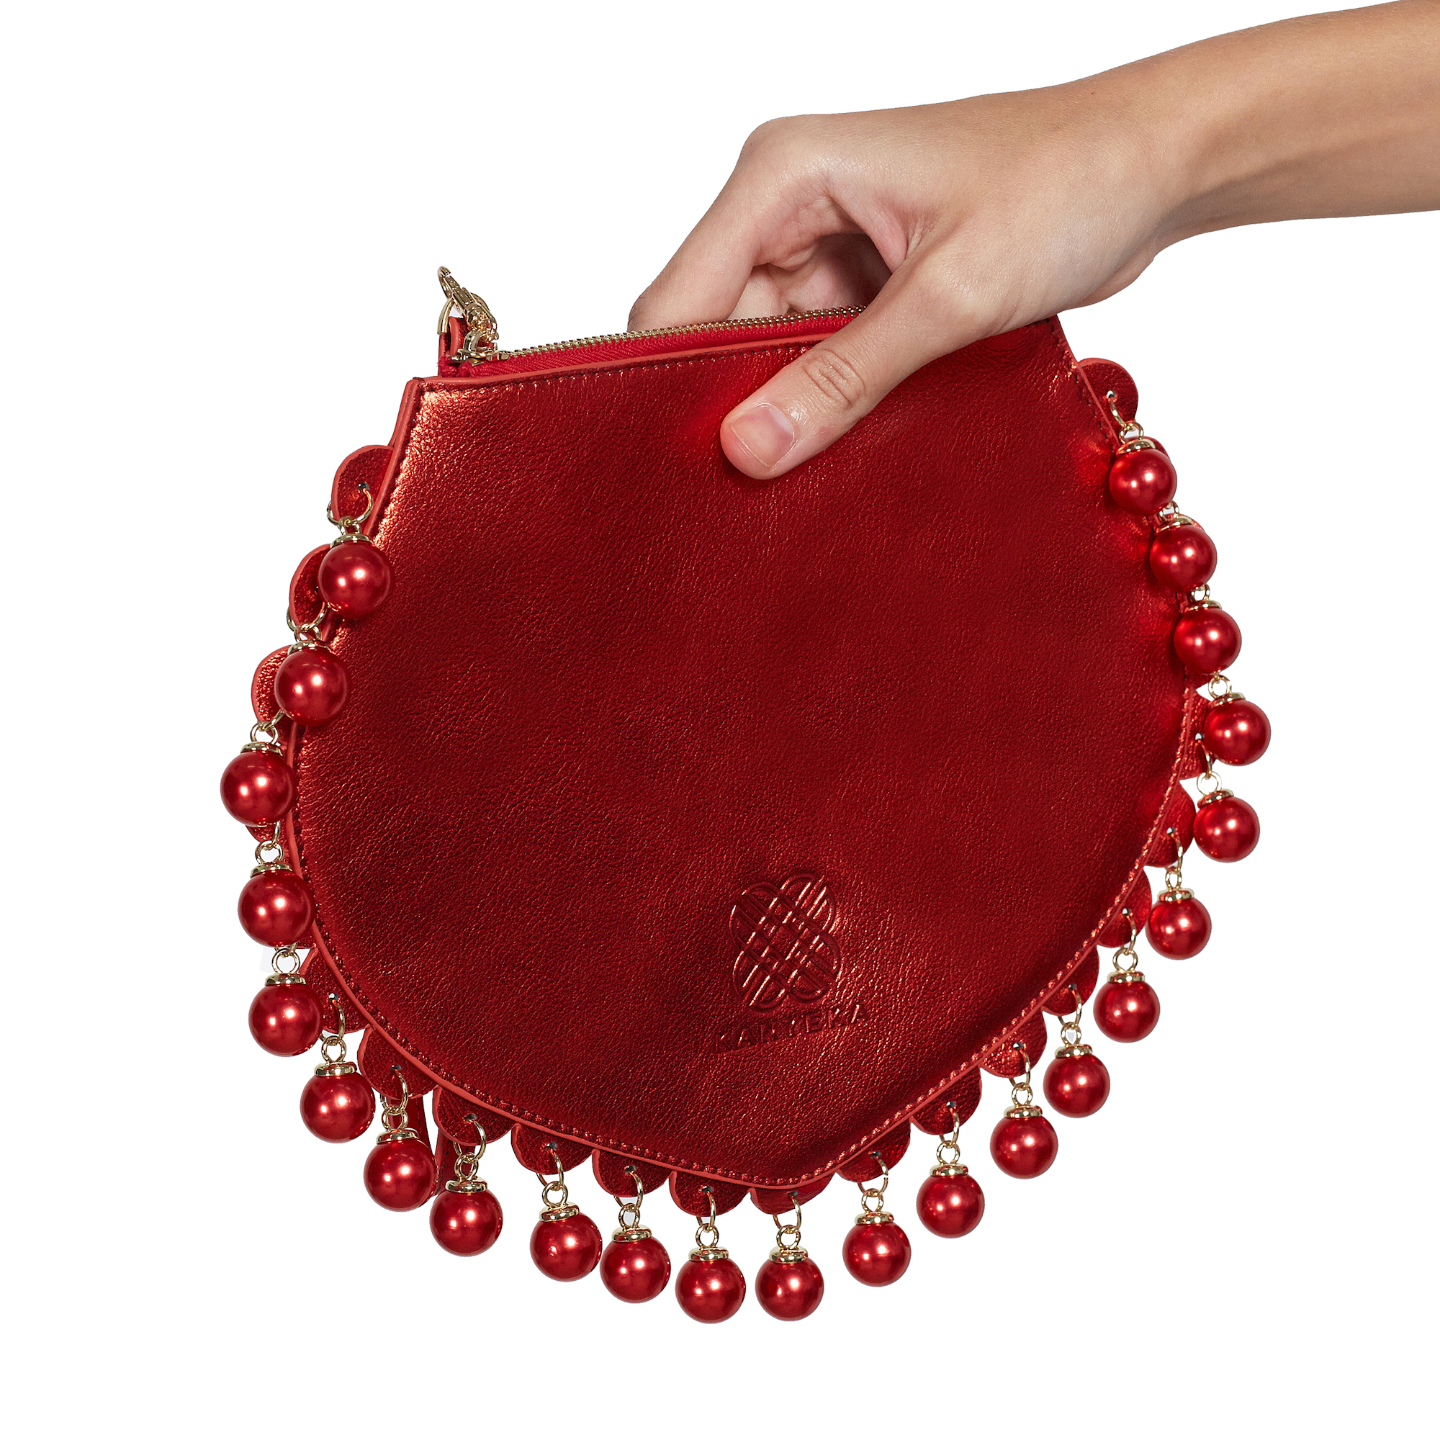 Side view of CHARMAINE sharp red clutch bag with pearls